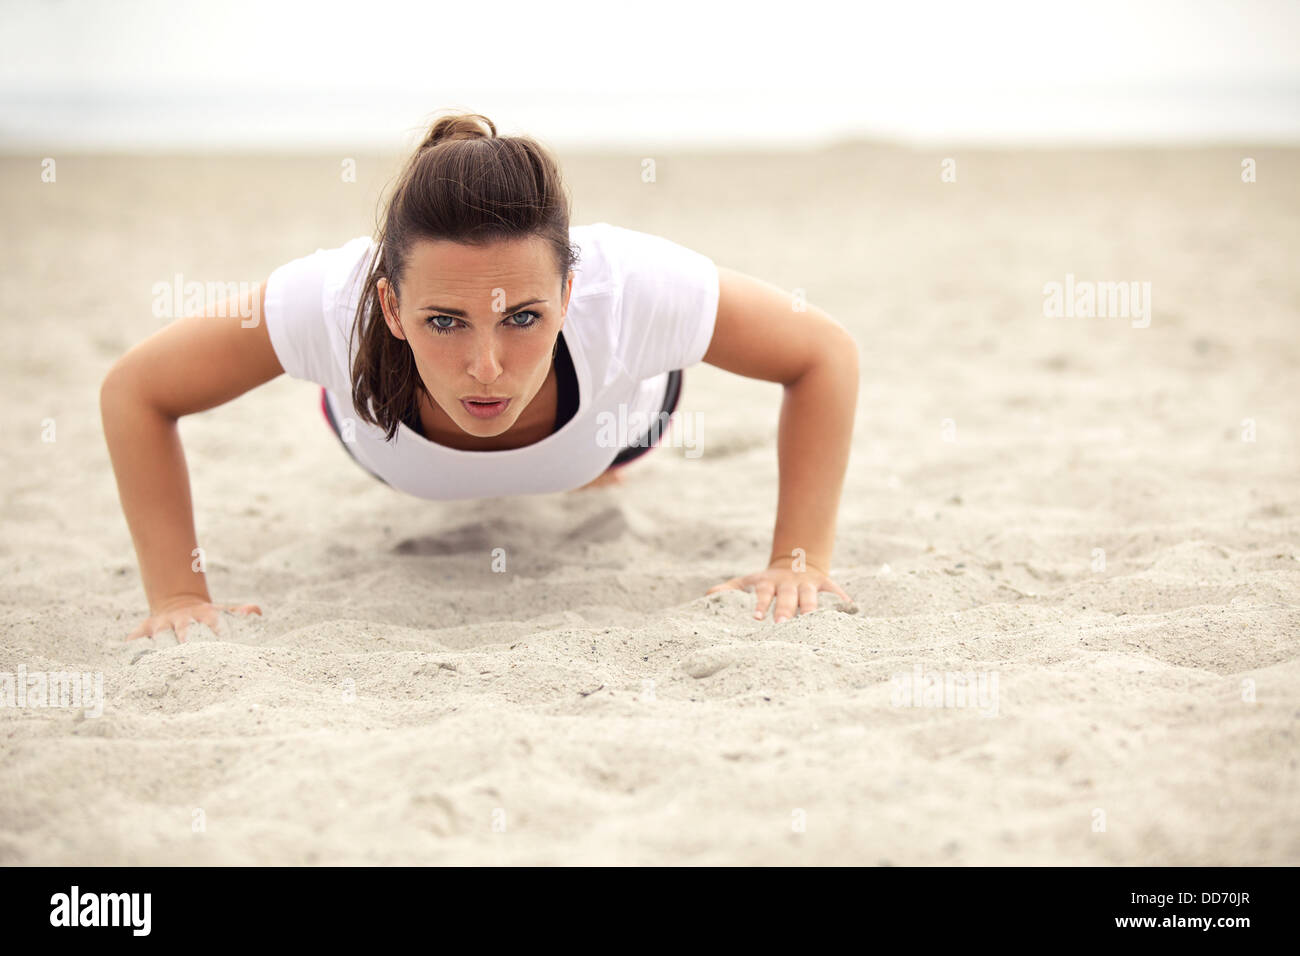 Fitness woman on the beach doing push up exercise - Stock Image